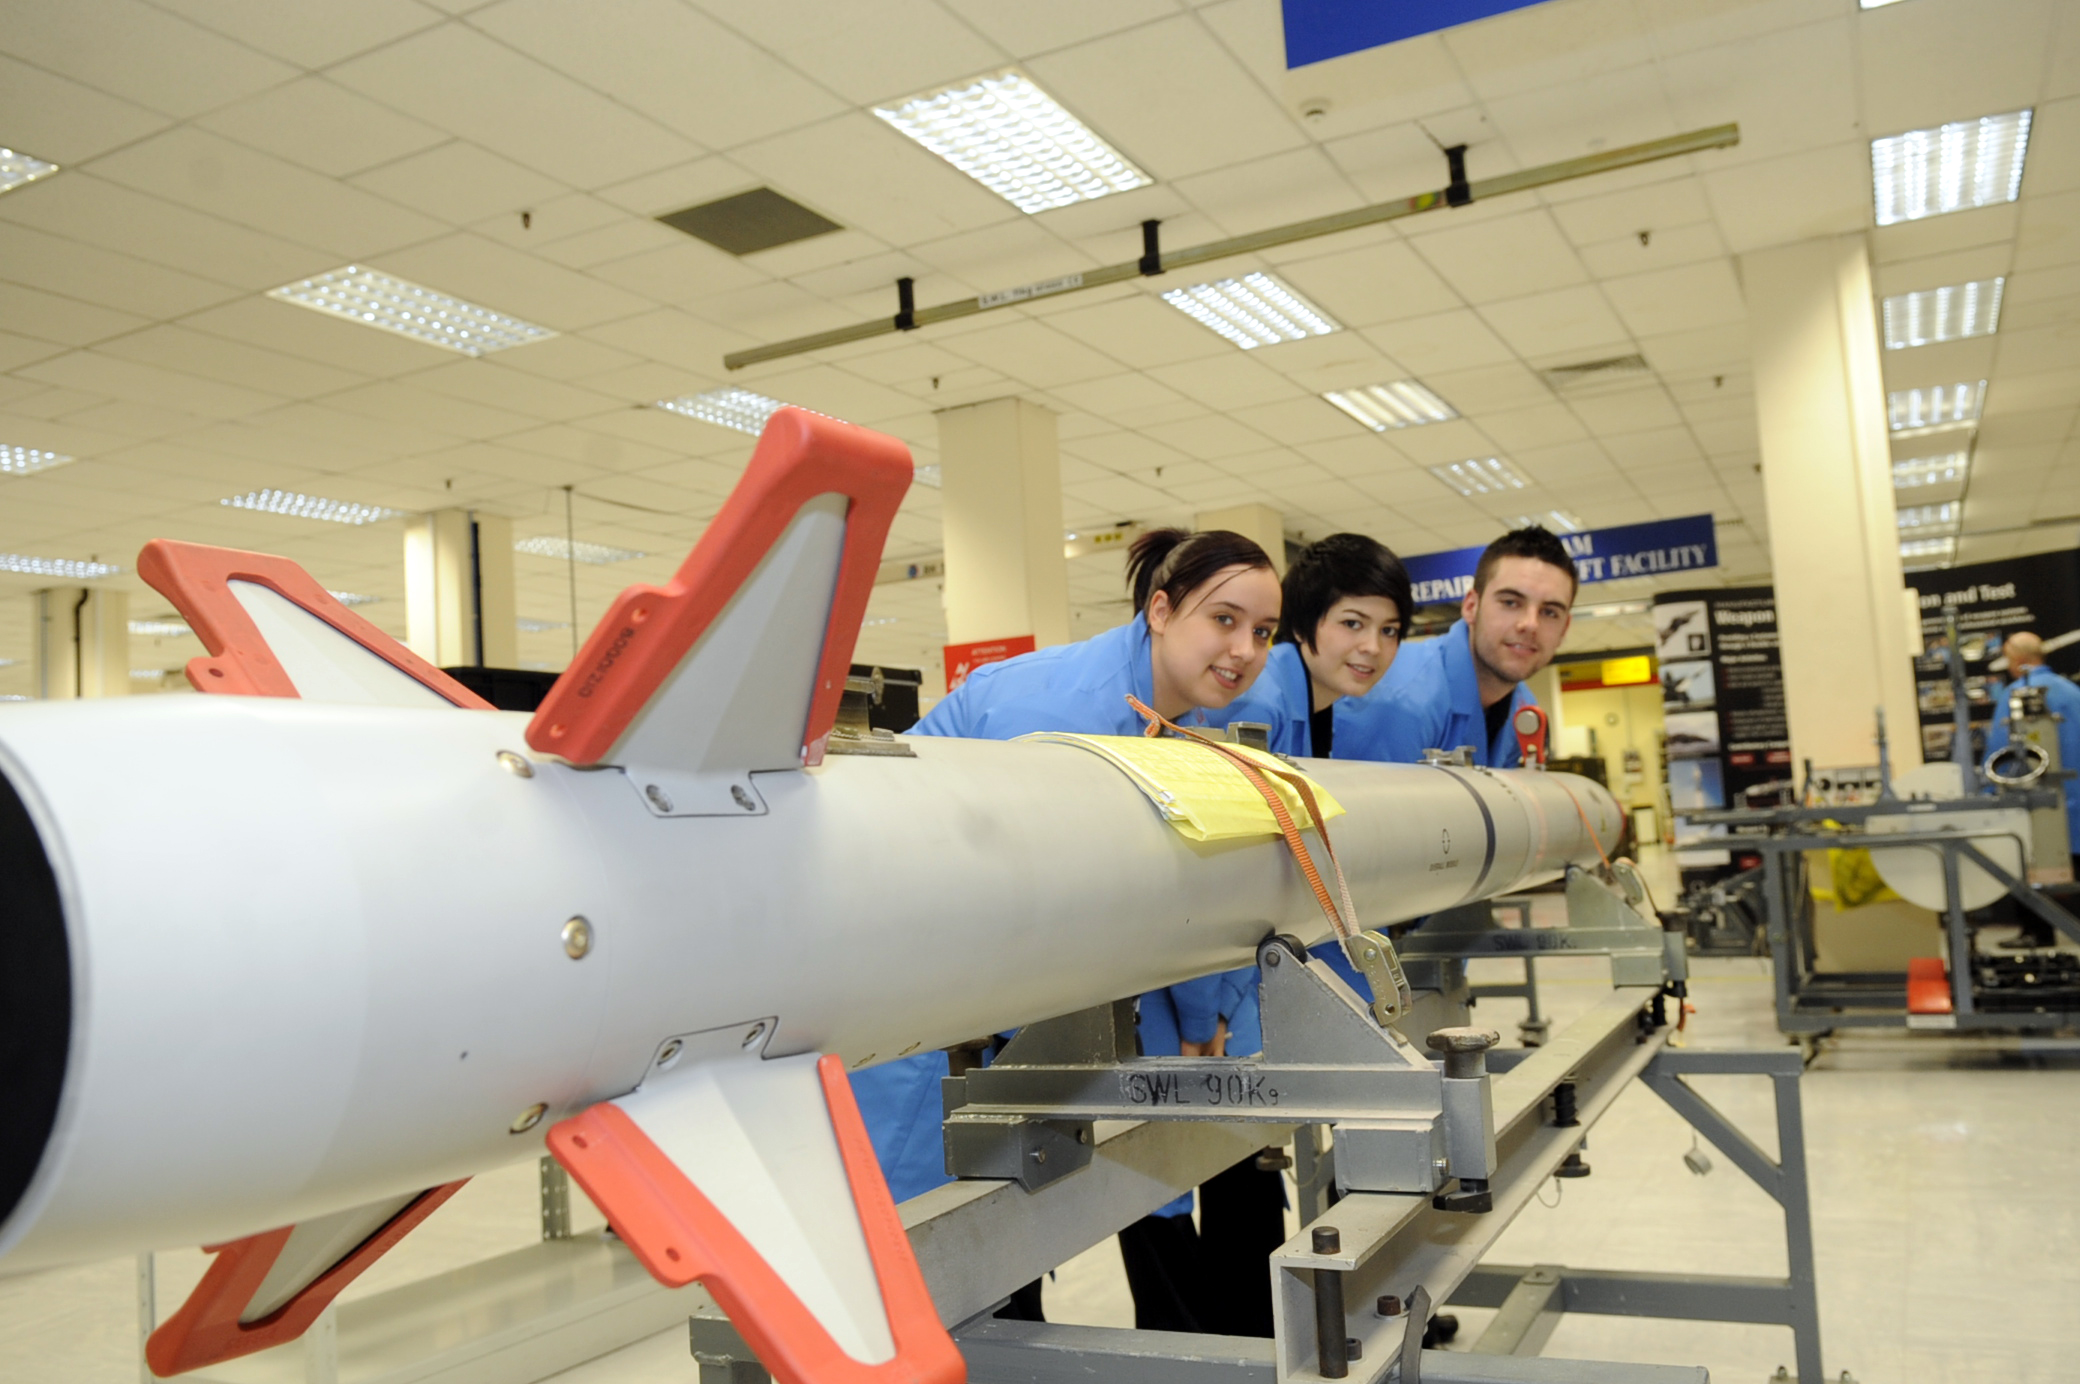 Apprentices with a missile at the MBDA site in Lostock